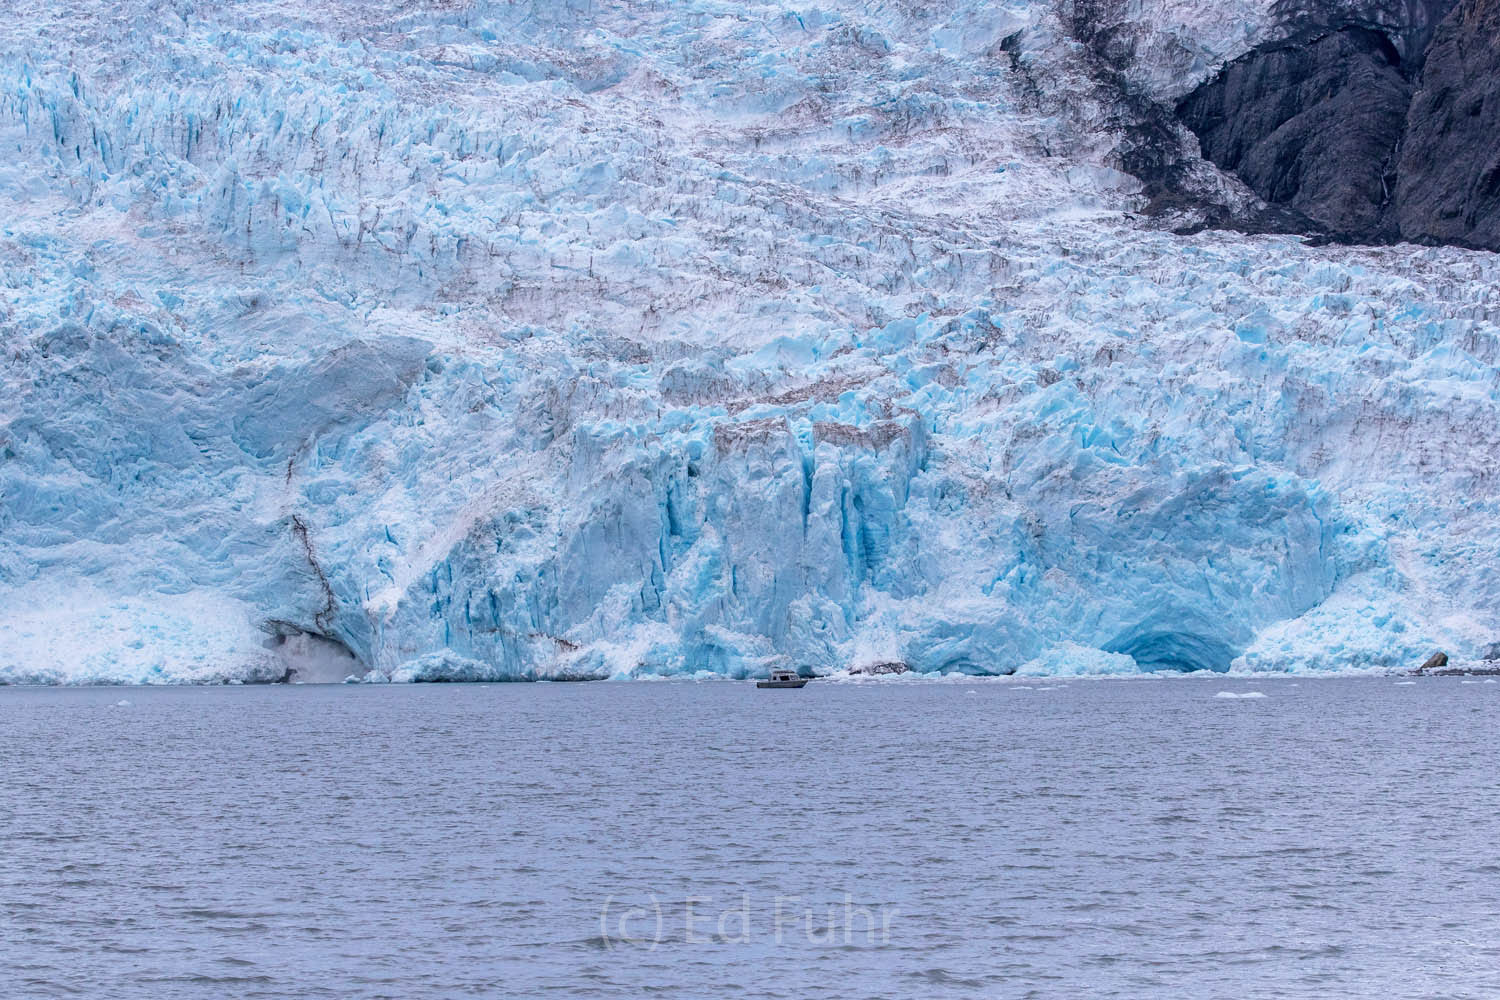 Below this glacier, actually one of the smaller ones in Aialik Bay, water rushes through an opening and into the sea.